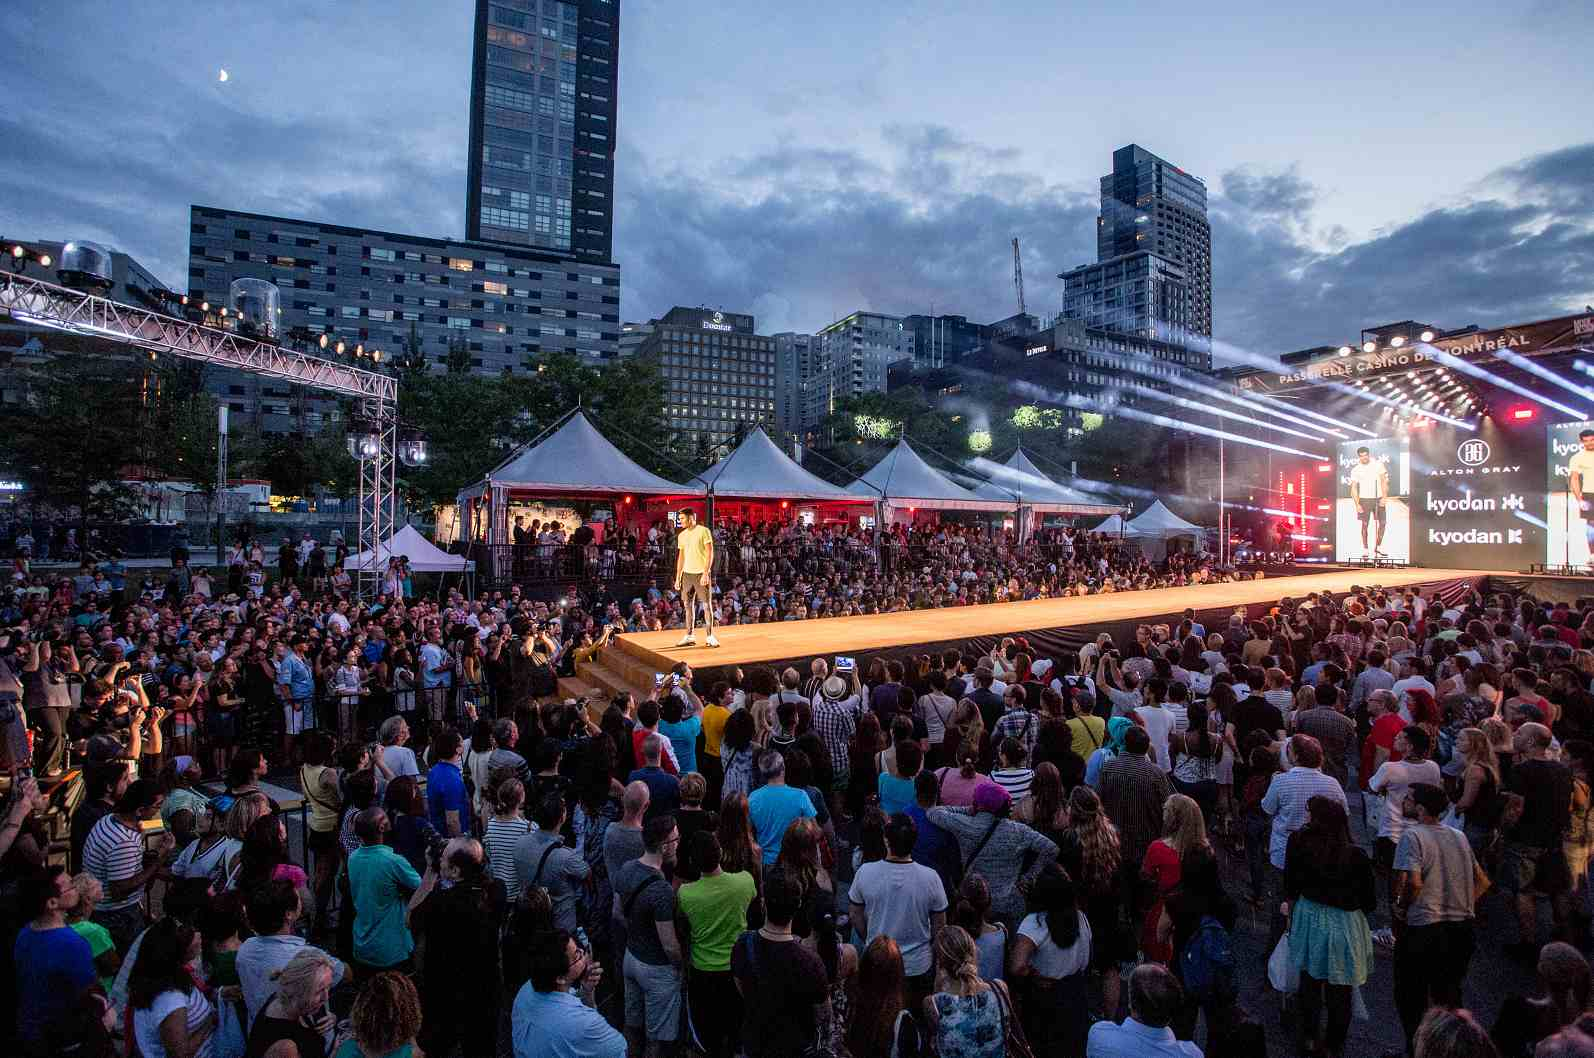 Montreal festivals in August 2016 include the Montreal Fashion and Design Festival.